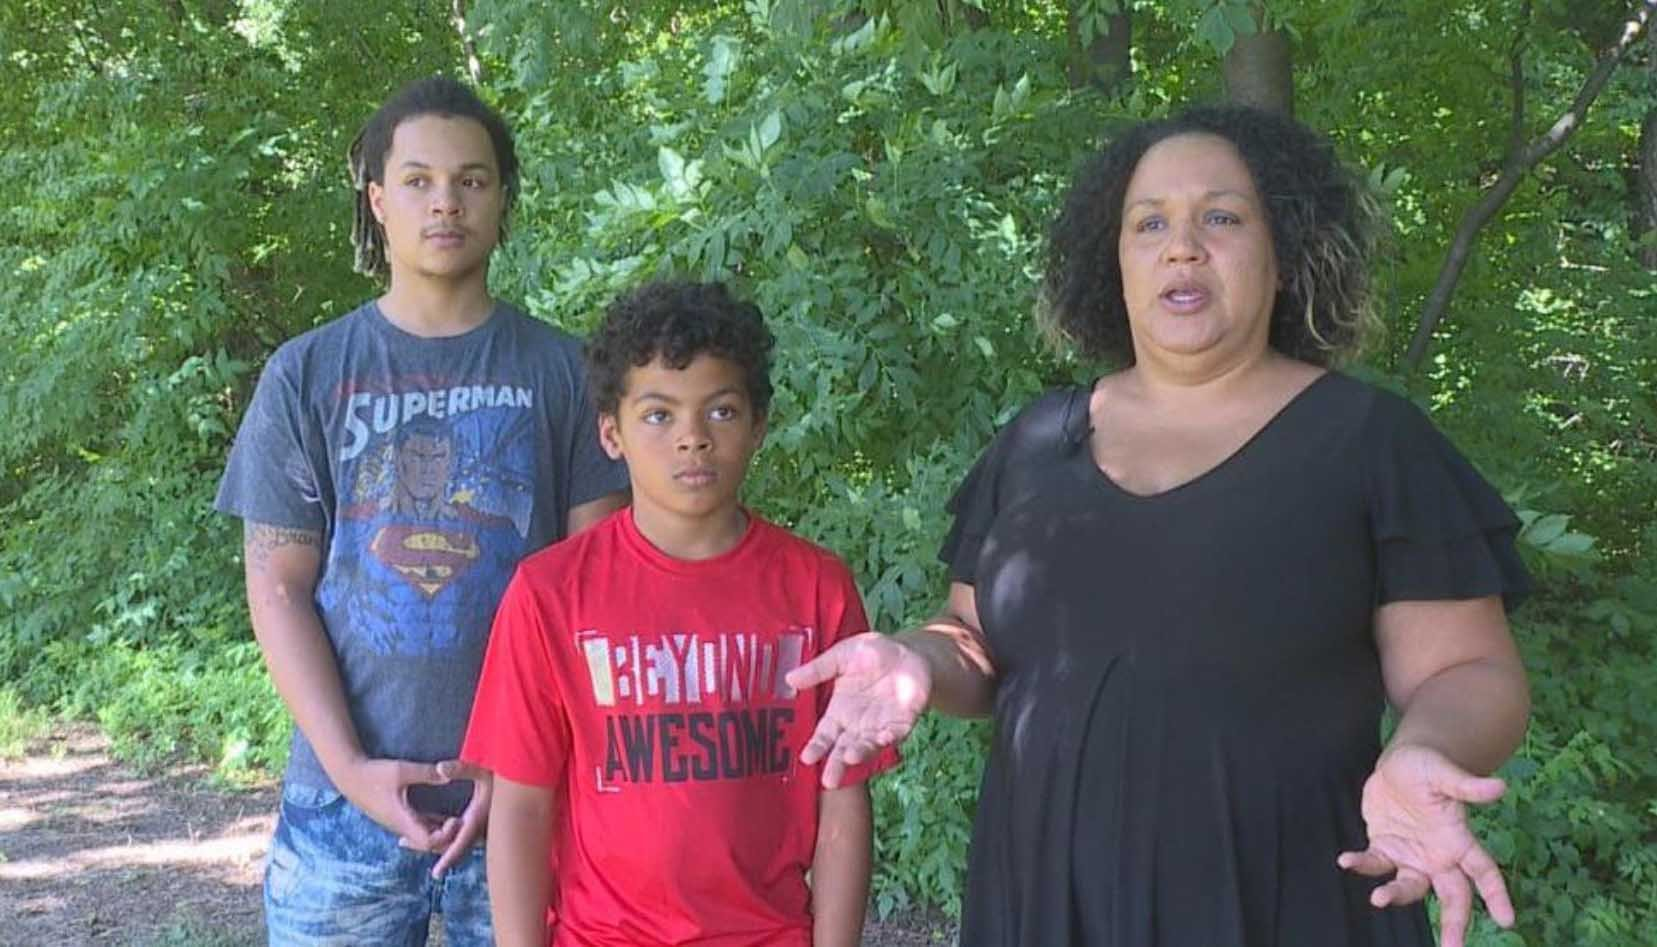 A family says they were the subject of racial profiling after the police were called on them while they were delivering newspapers. (Source: WSYX via CNN)